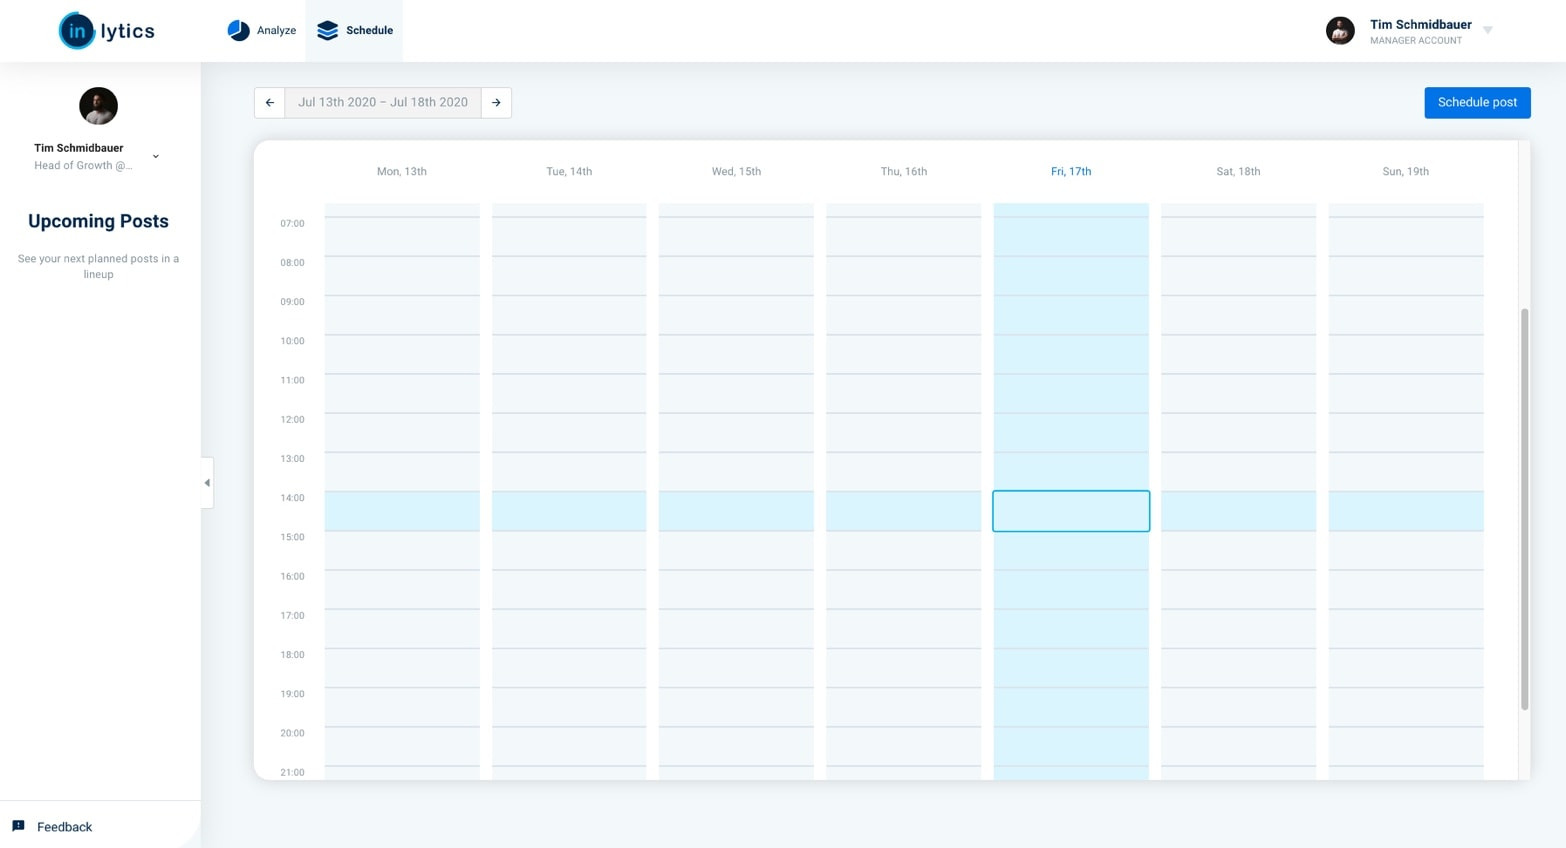 LinkedIn Scheduling tool for personal profiles